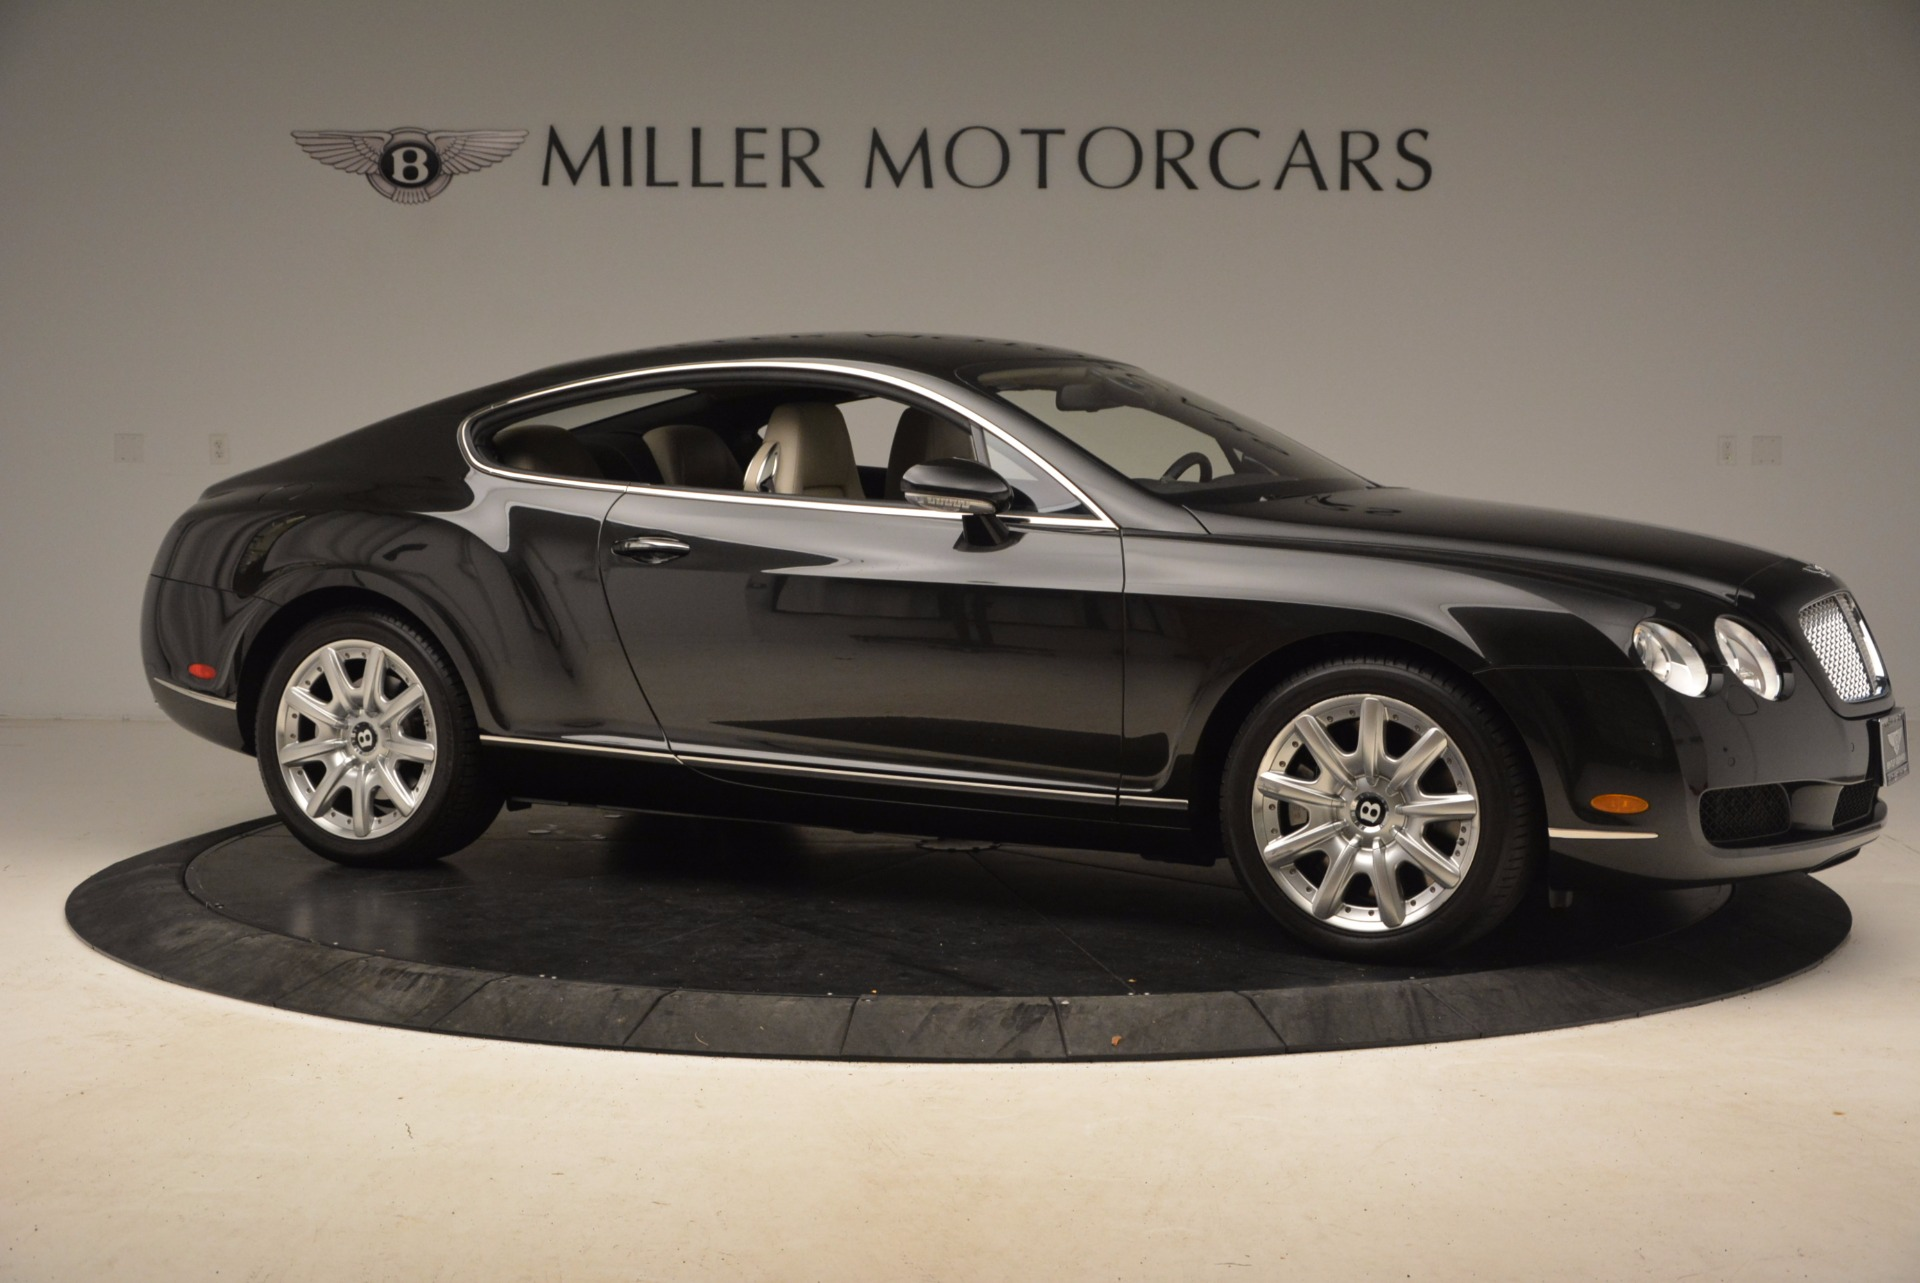 Used 2005 Bentley Continental GT W12 For Sale In Westport, CT 1677_p10